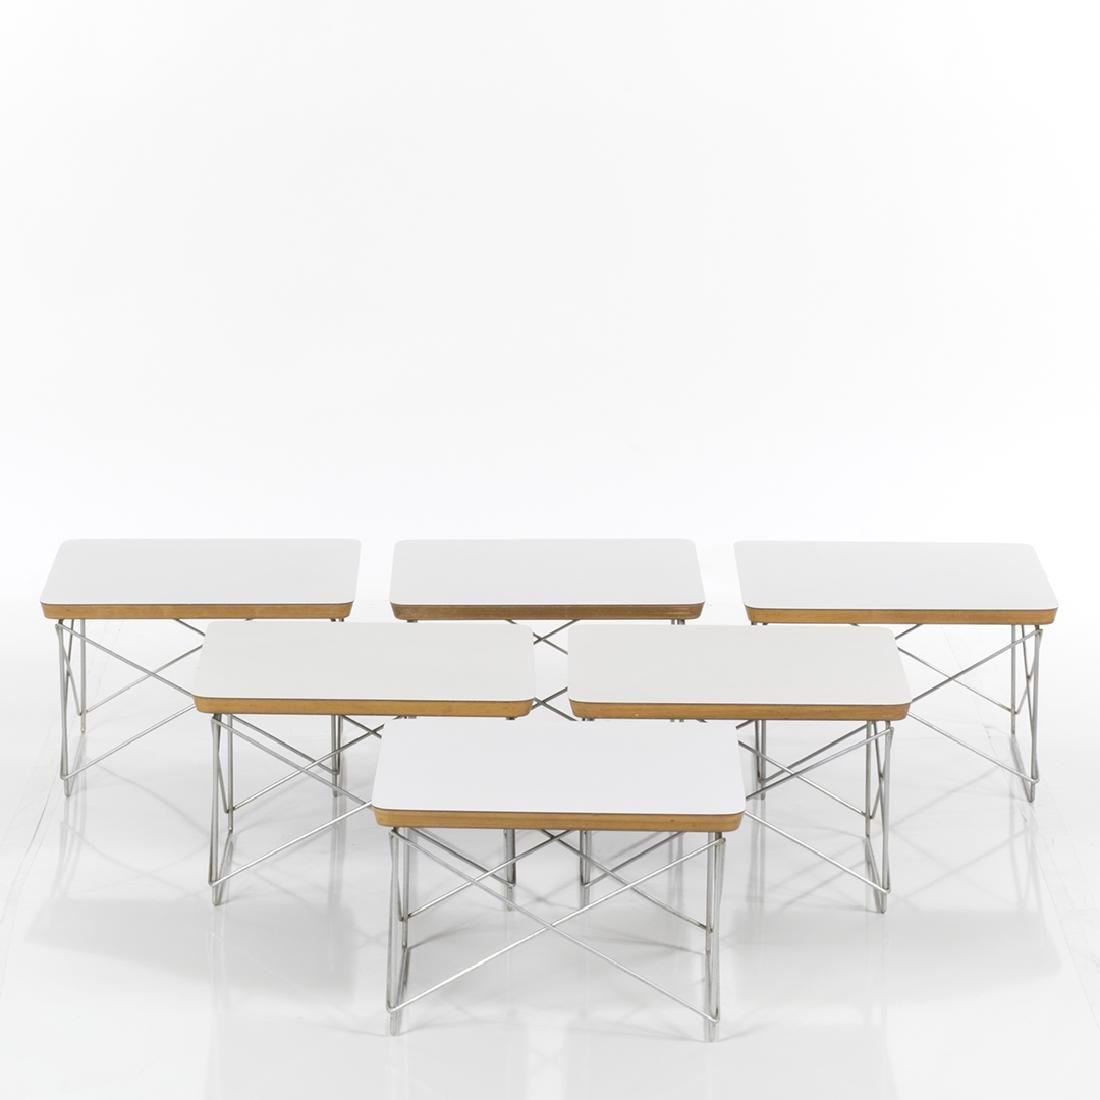 Charles Eames LTR tables (6) - 2